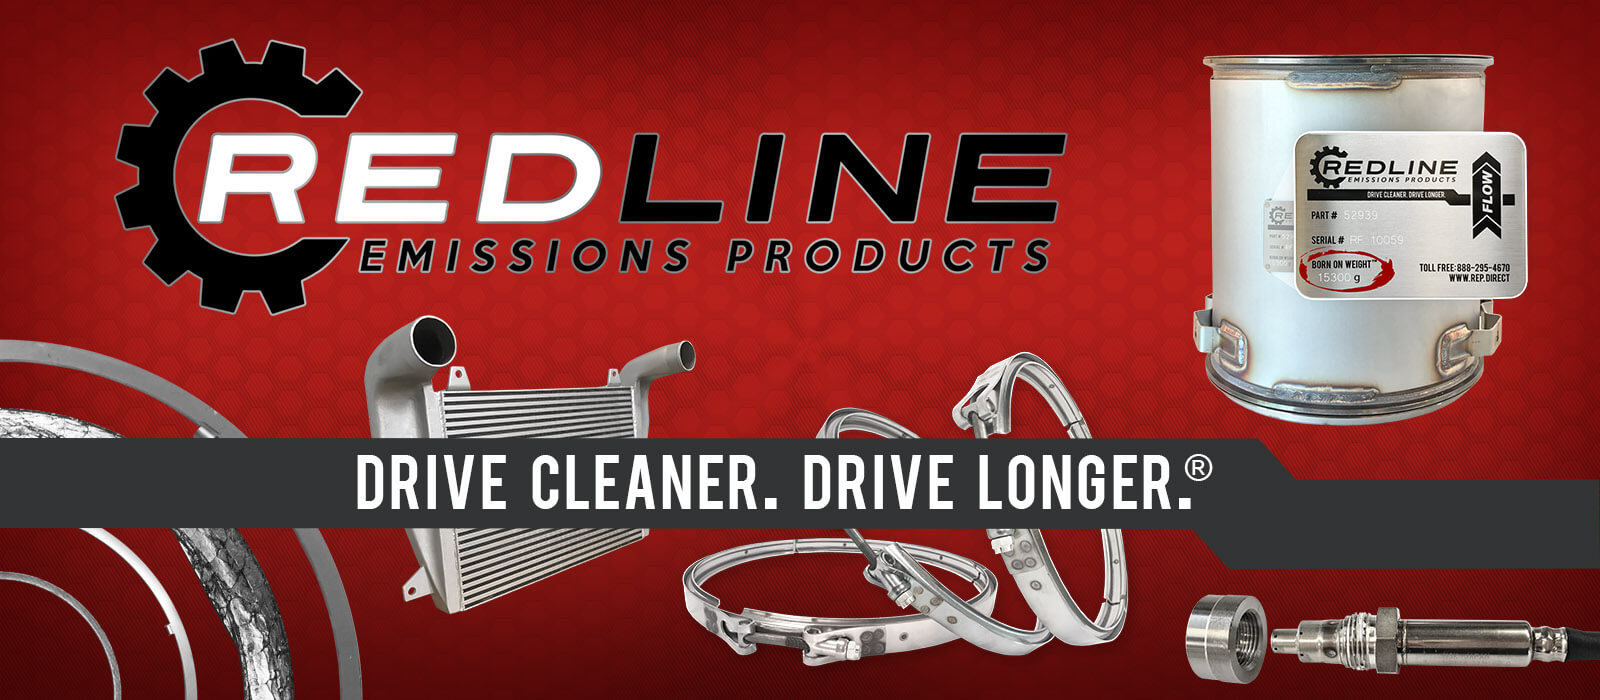 Redline Emissions Products. Drive Cleaner. Drive Longer.